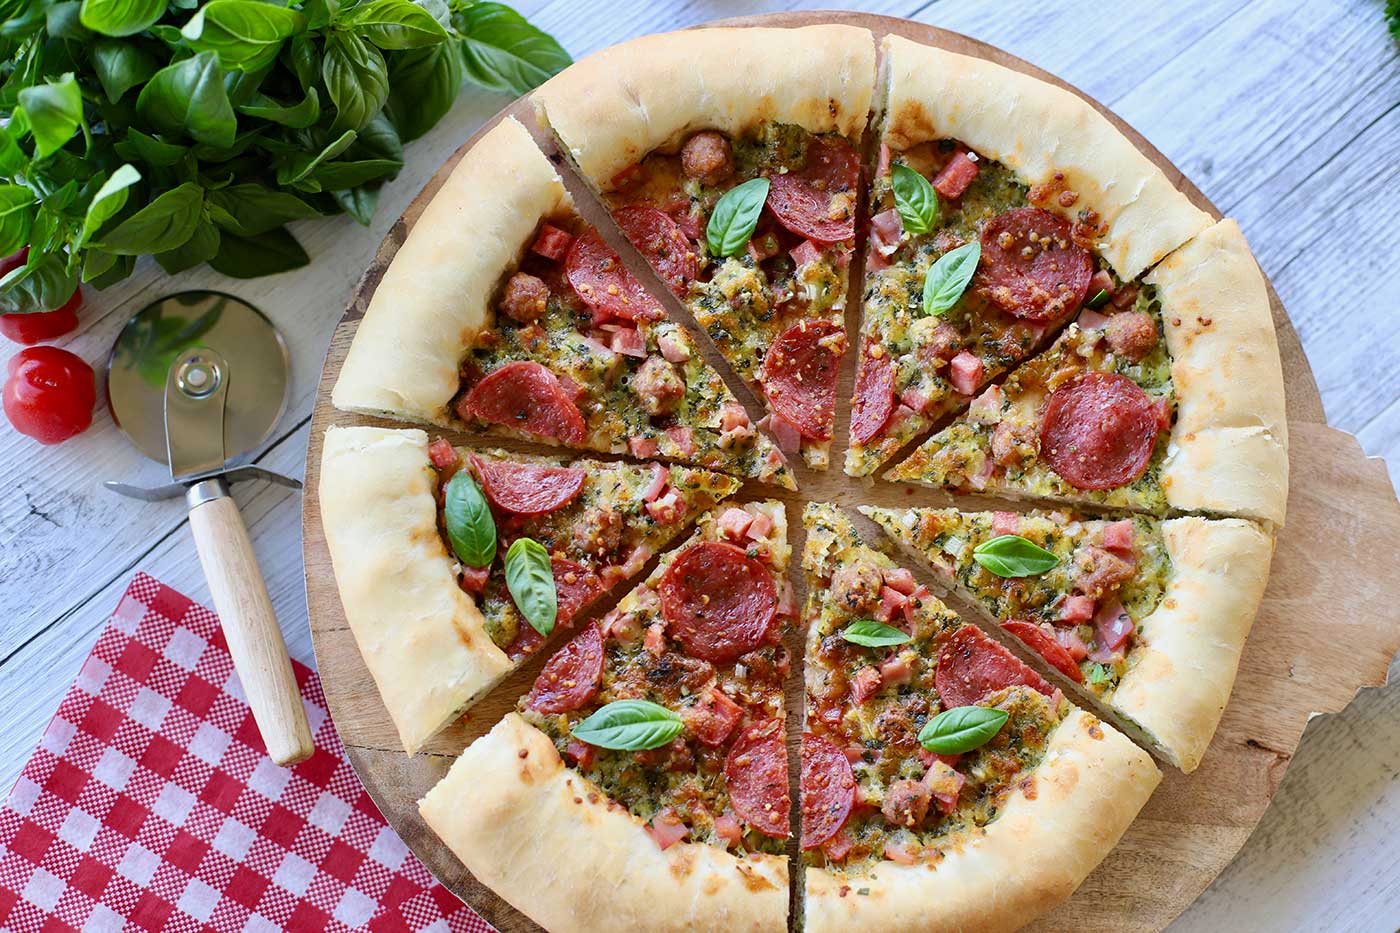 Stuffed-Crust-Meat-Lovers-Pizza-Thermomix-Recipe